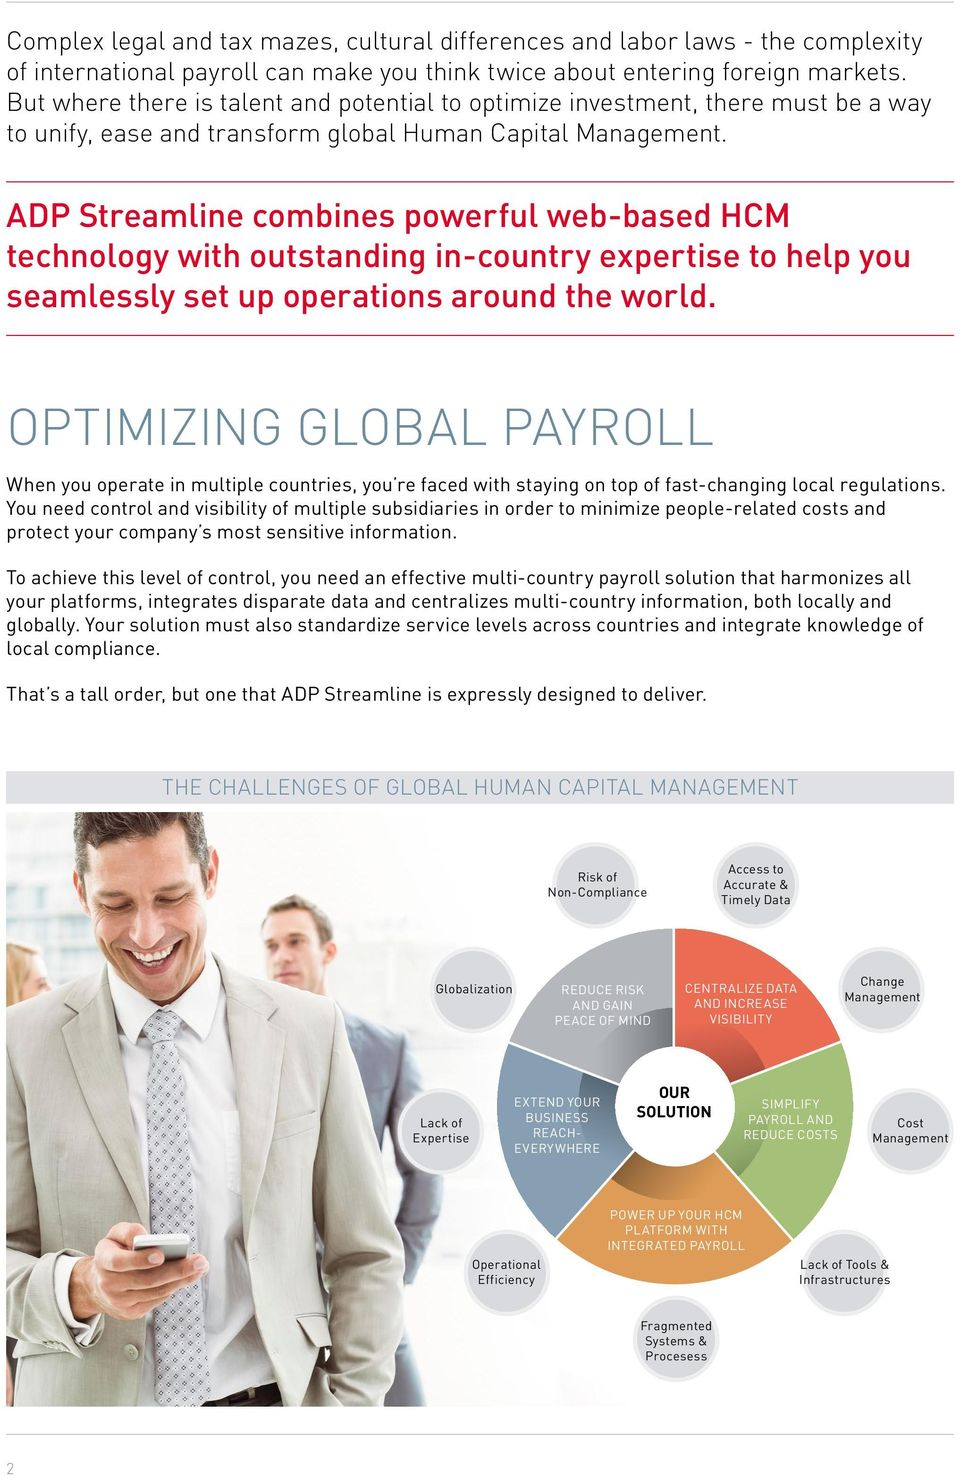 ADP Streamline combines powerful web-based HCM technology with outstanding in-country expertise to help you seamlessly set up operations around the world.